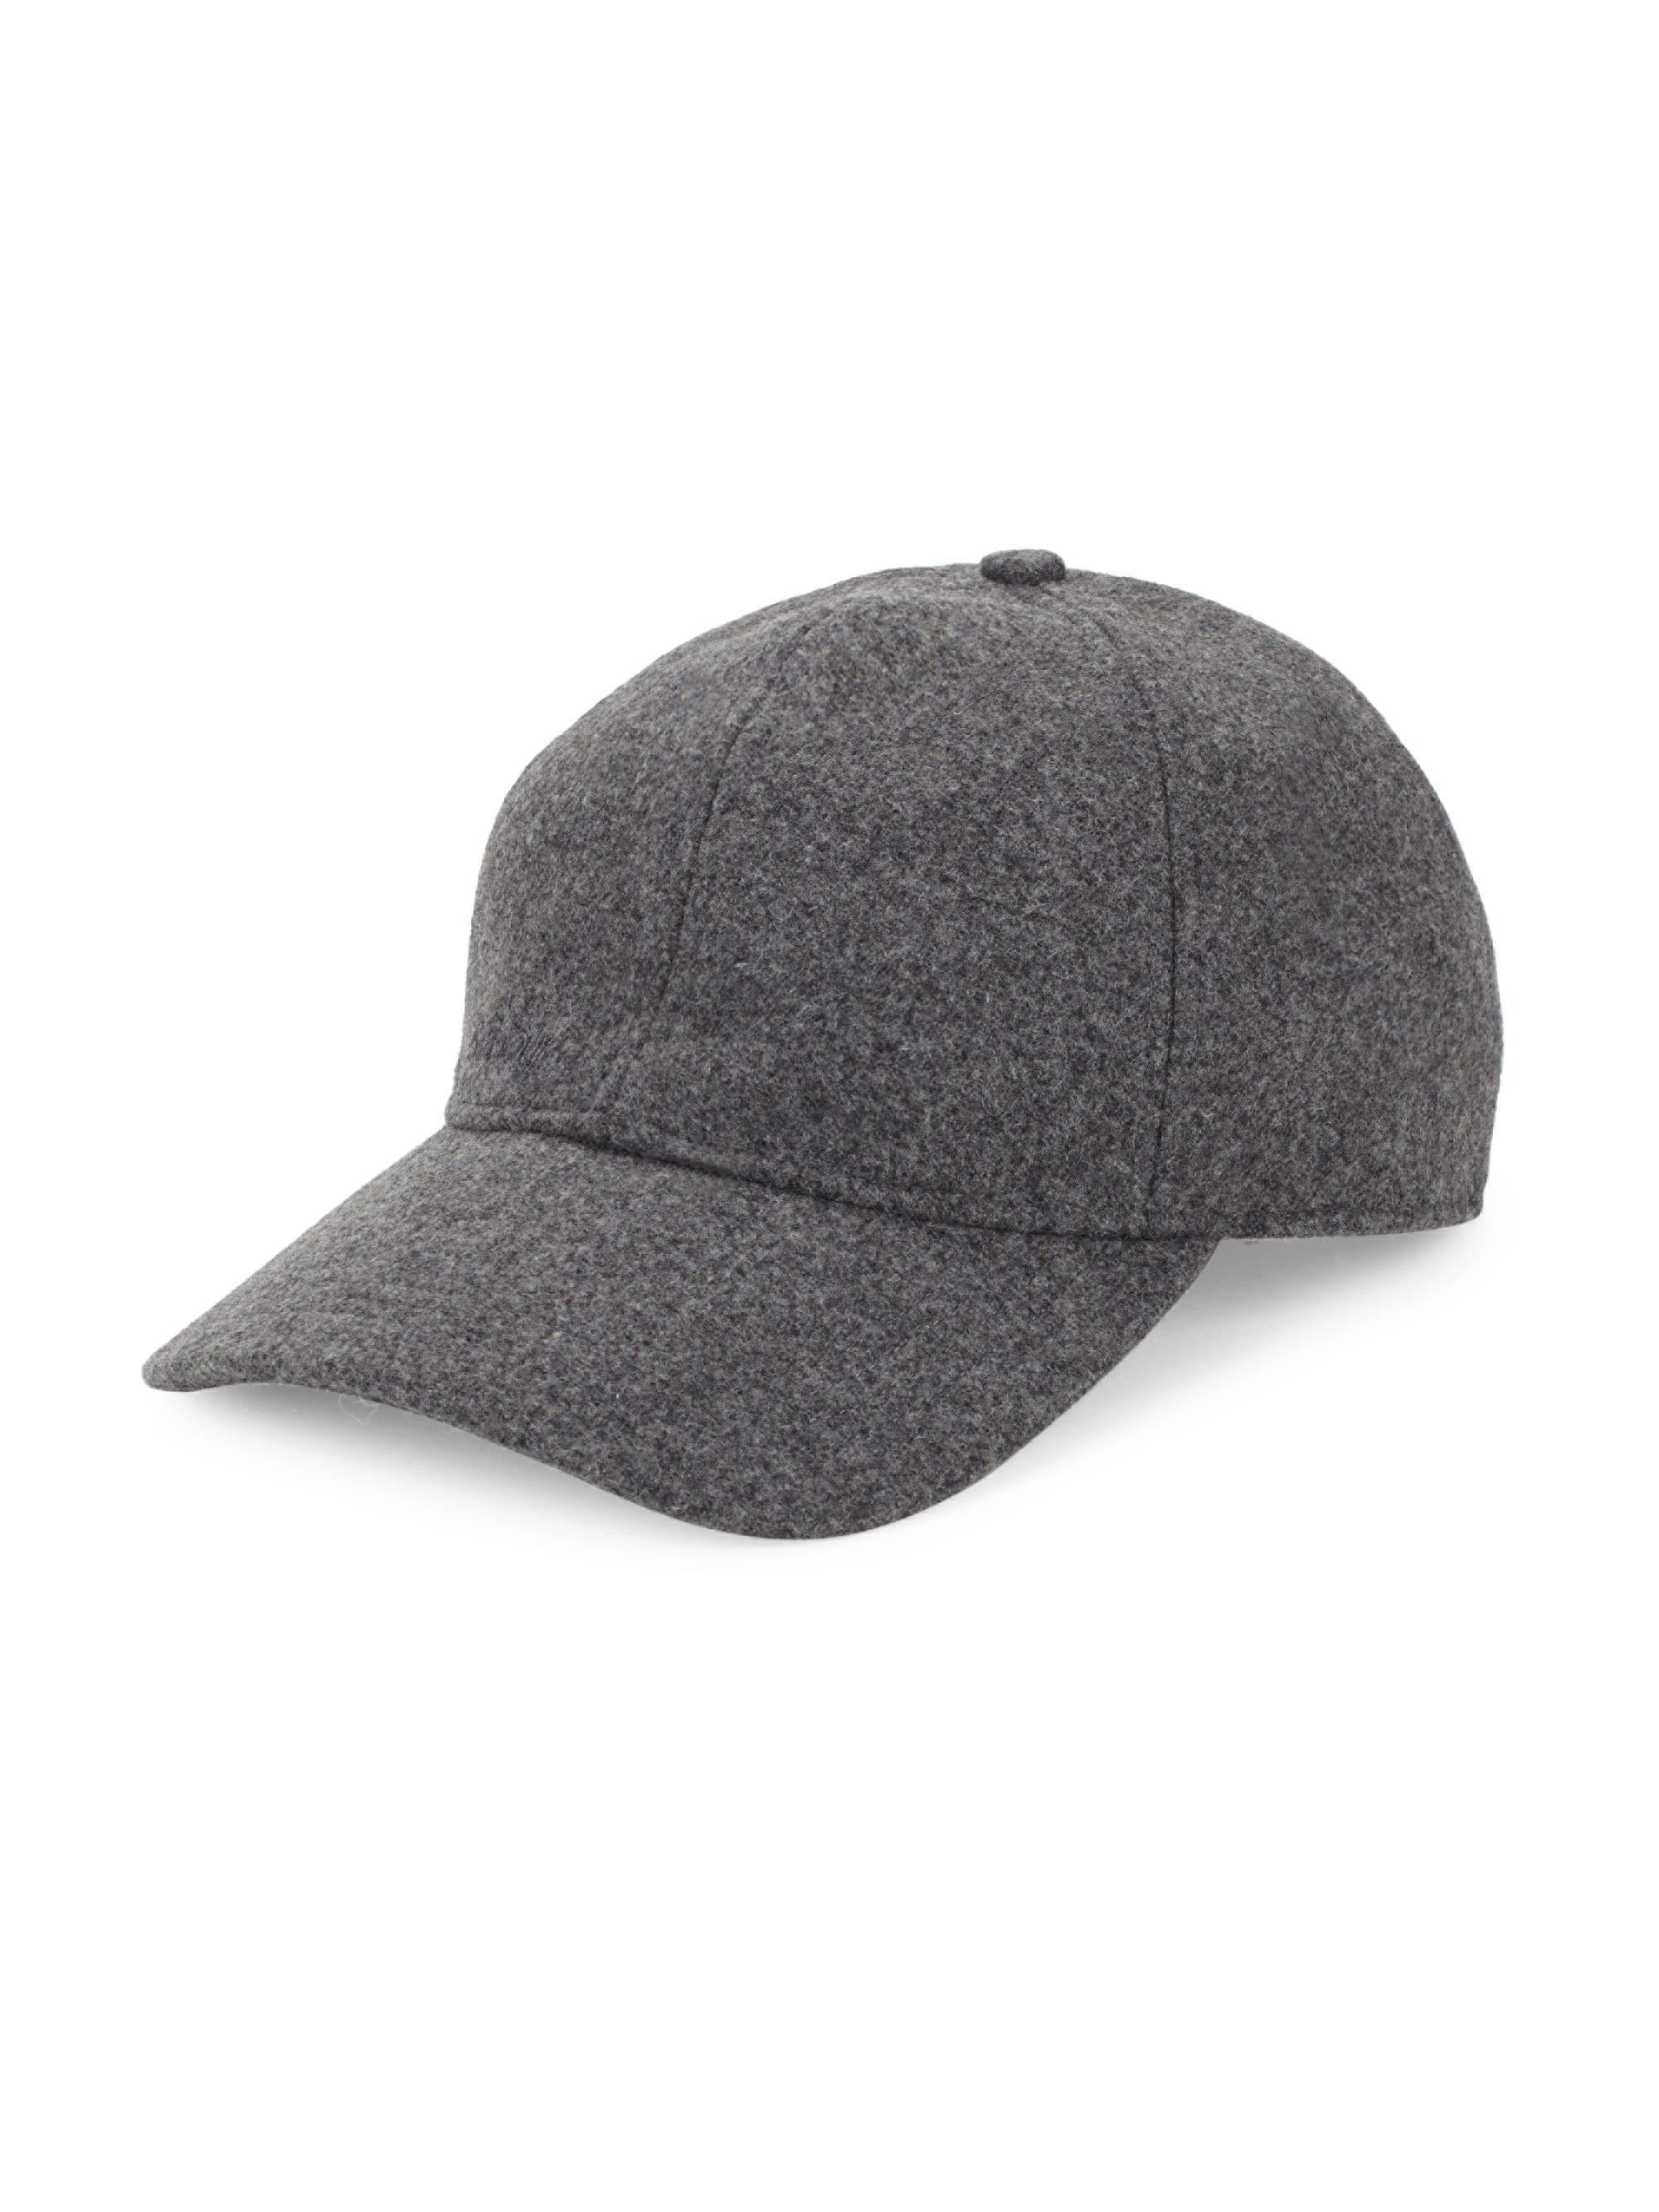 15ea613dd3e Lyst - Barbour Coopworth Wool-blend Sports Cap in Gray for Men